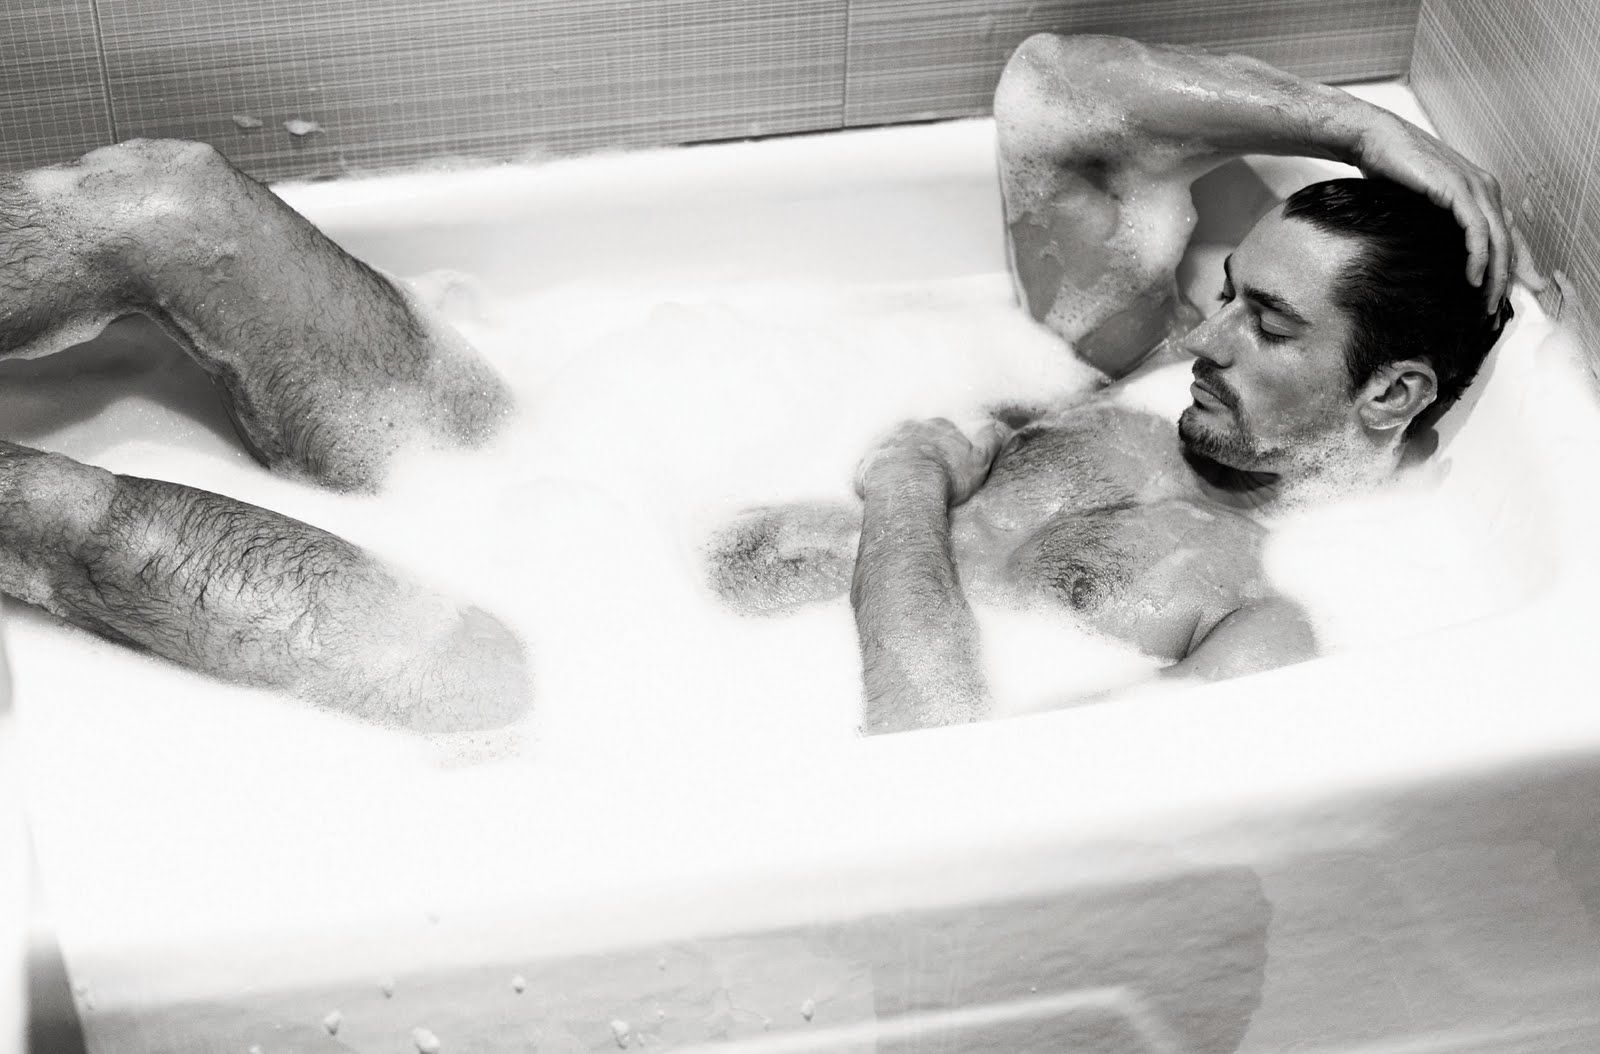 Hot Guy Kicking Back In The Tub And Makes Me Want To Jump Right In.